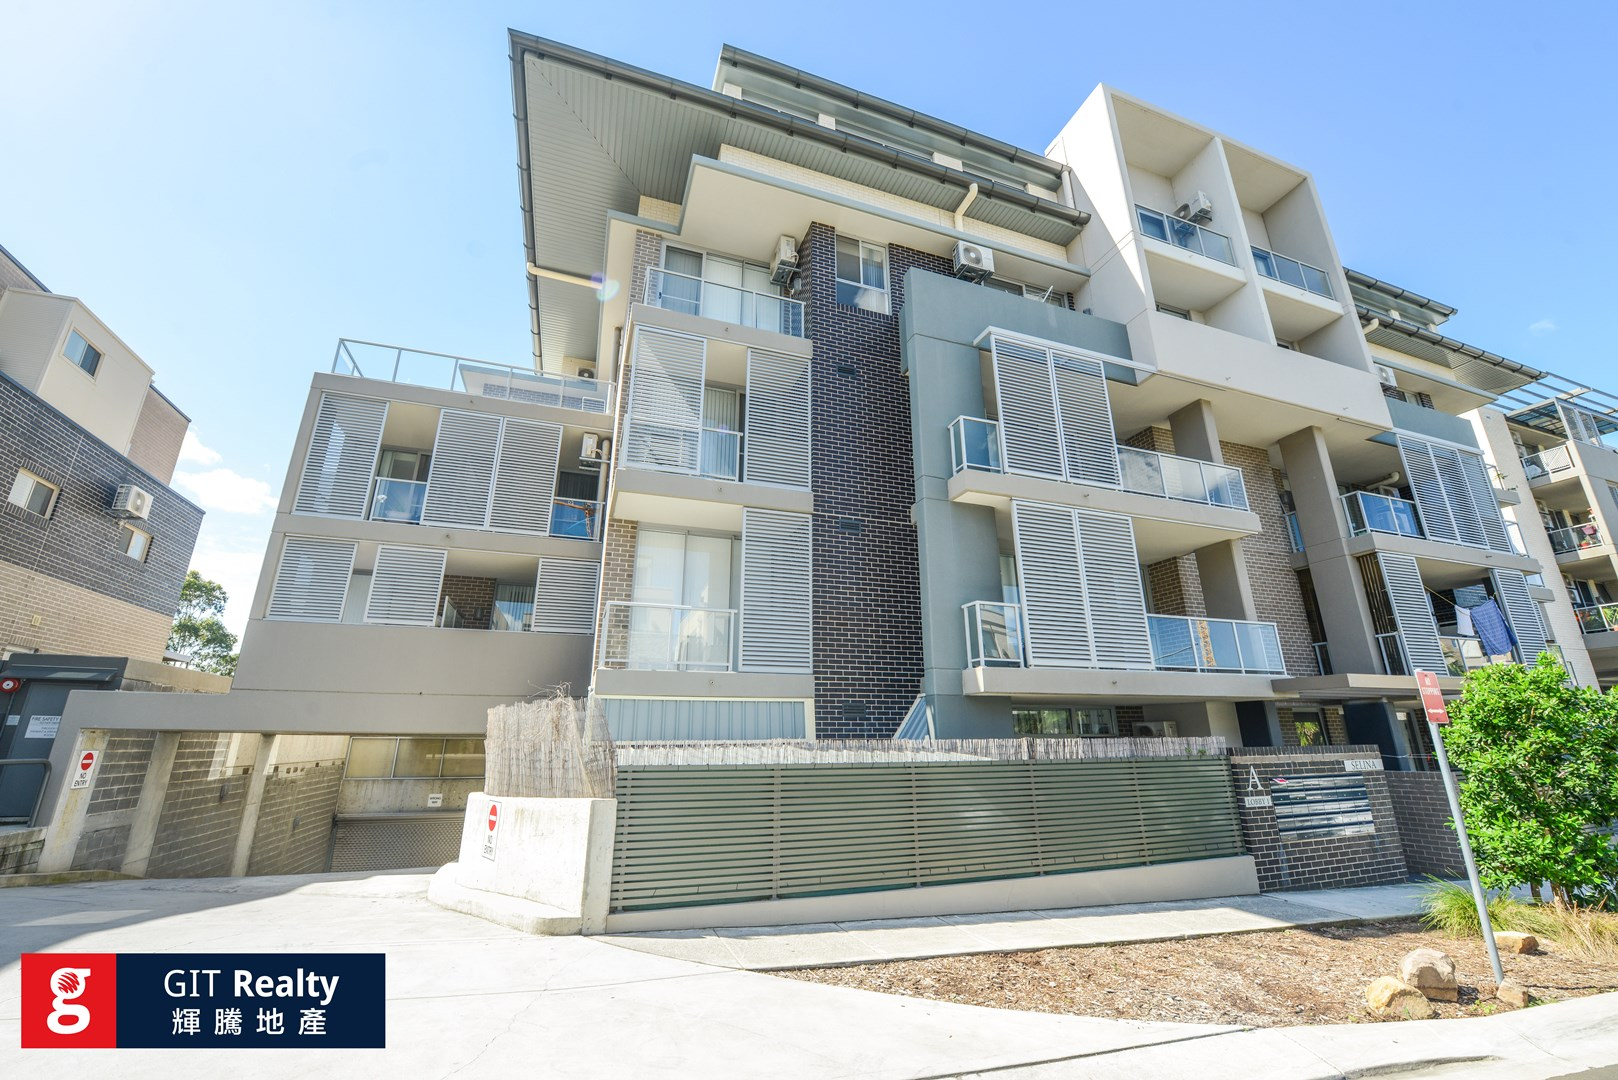 A207 81 86 Courallie Ave Homebush West NSW 2140